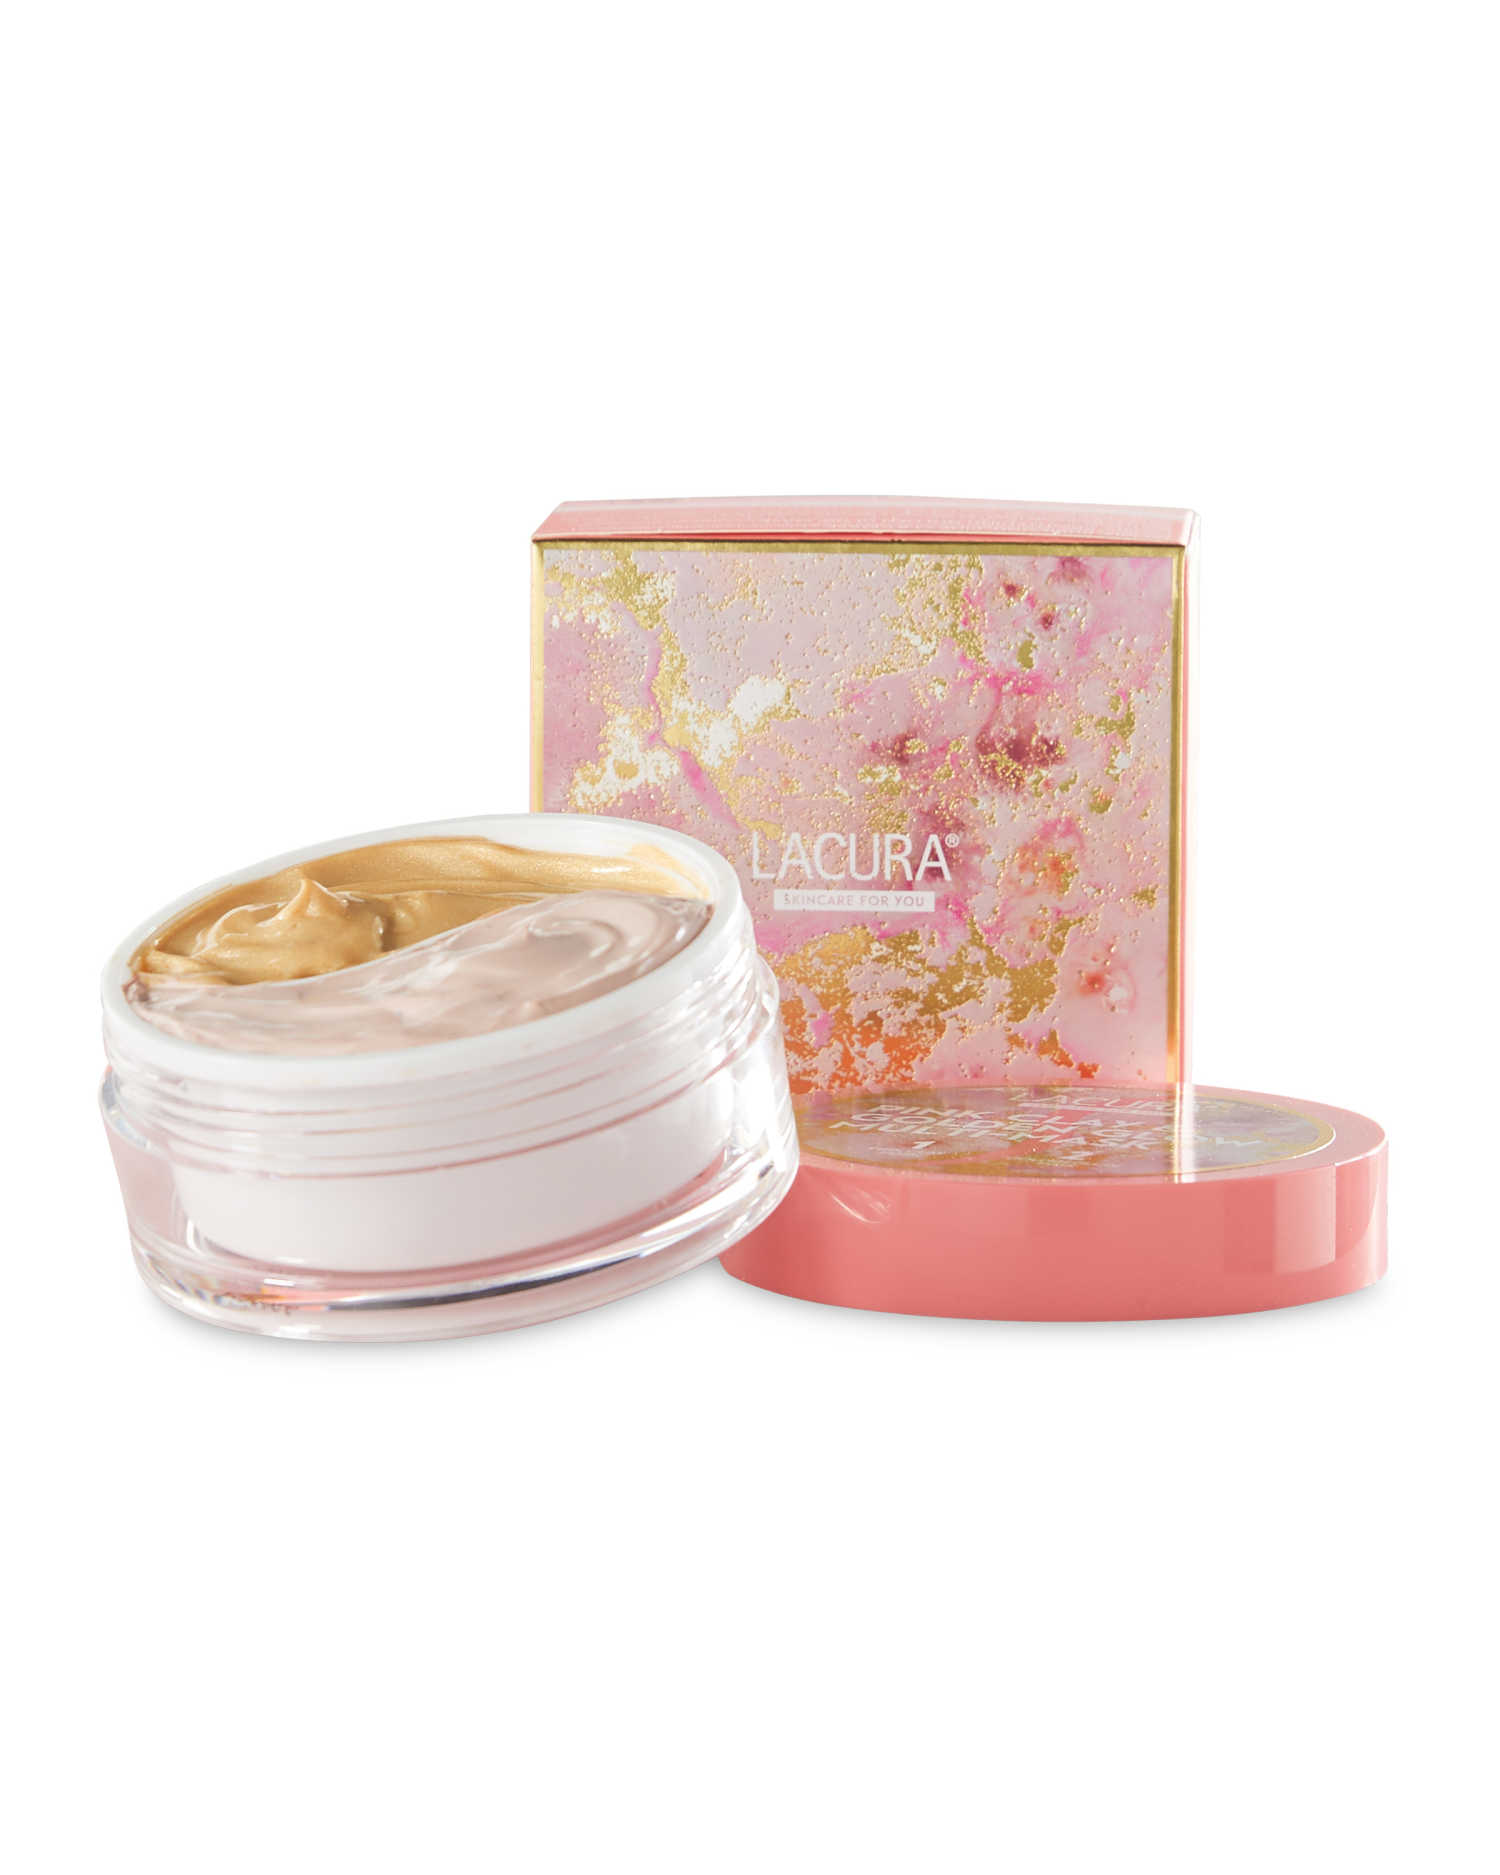 Aldi Lacura Pink Clay and Golden Glow Multi-Mask